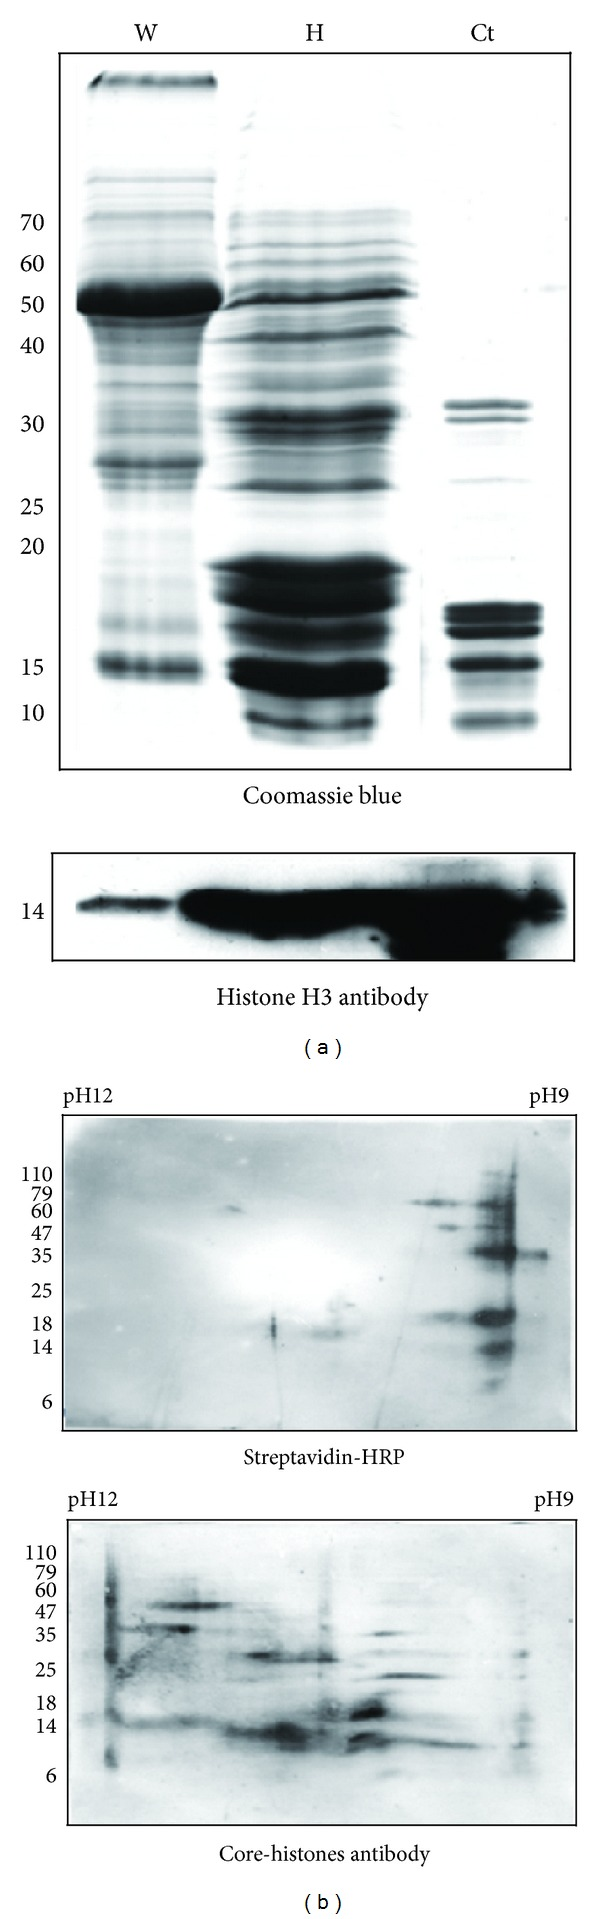 2D gel analysis. (a) Histone proteins were enriched from Arabidopsis young seedling lysate and stained with Coomassie Blue. The same amount of total and histone-enriched proteins was separated by 15% SDS-PAGE and the western blot results showed that histone proteins were enriched from Arabidopsis young seedling lysate. W: the total isolated proteins. H: the histone-enriched proteins. Ct: commercial calf thymus histones (Sigma). (b) The histone-enriched proteins were analyzed by 20% SDS-PAGE with pH gradient from 9 to 12. The biotin signals that concentrate at pH 9 versus the core-histones signals that distribute between pH 10 to 11. Experiments were conducted in triplicate.